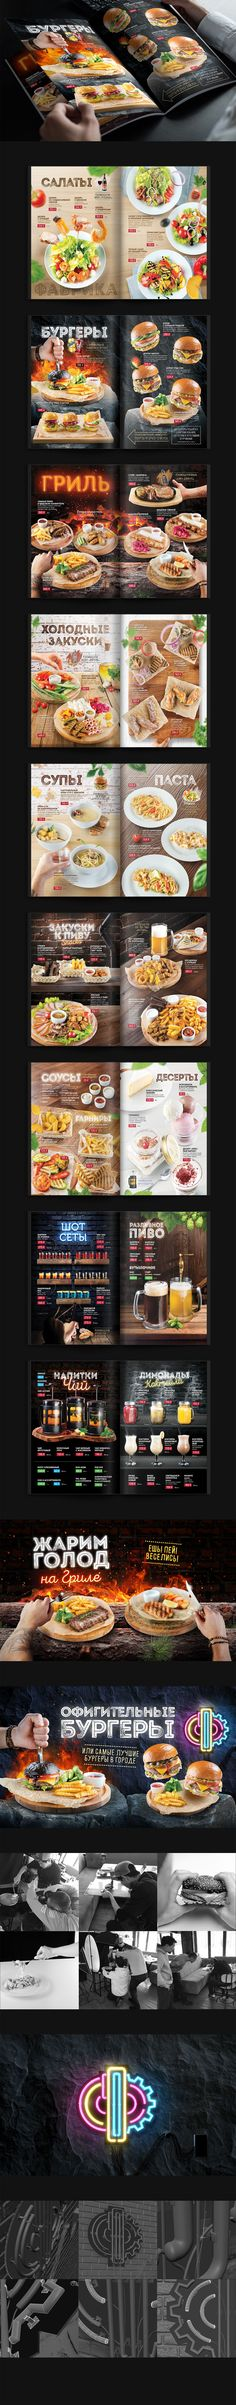 Grill-bar Fabrika menu on Behance